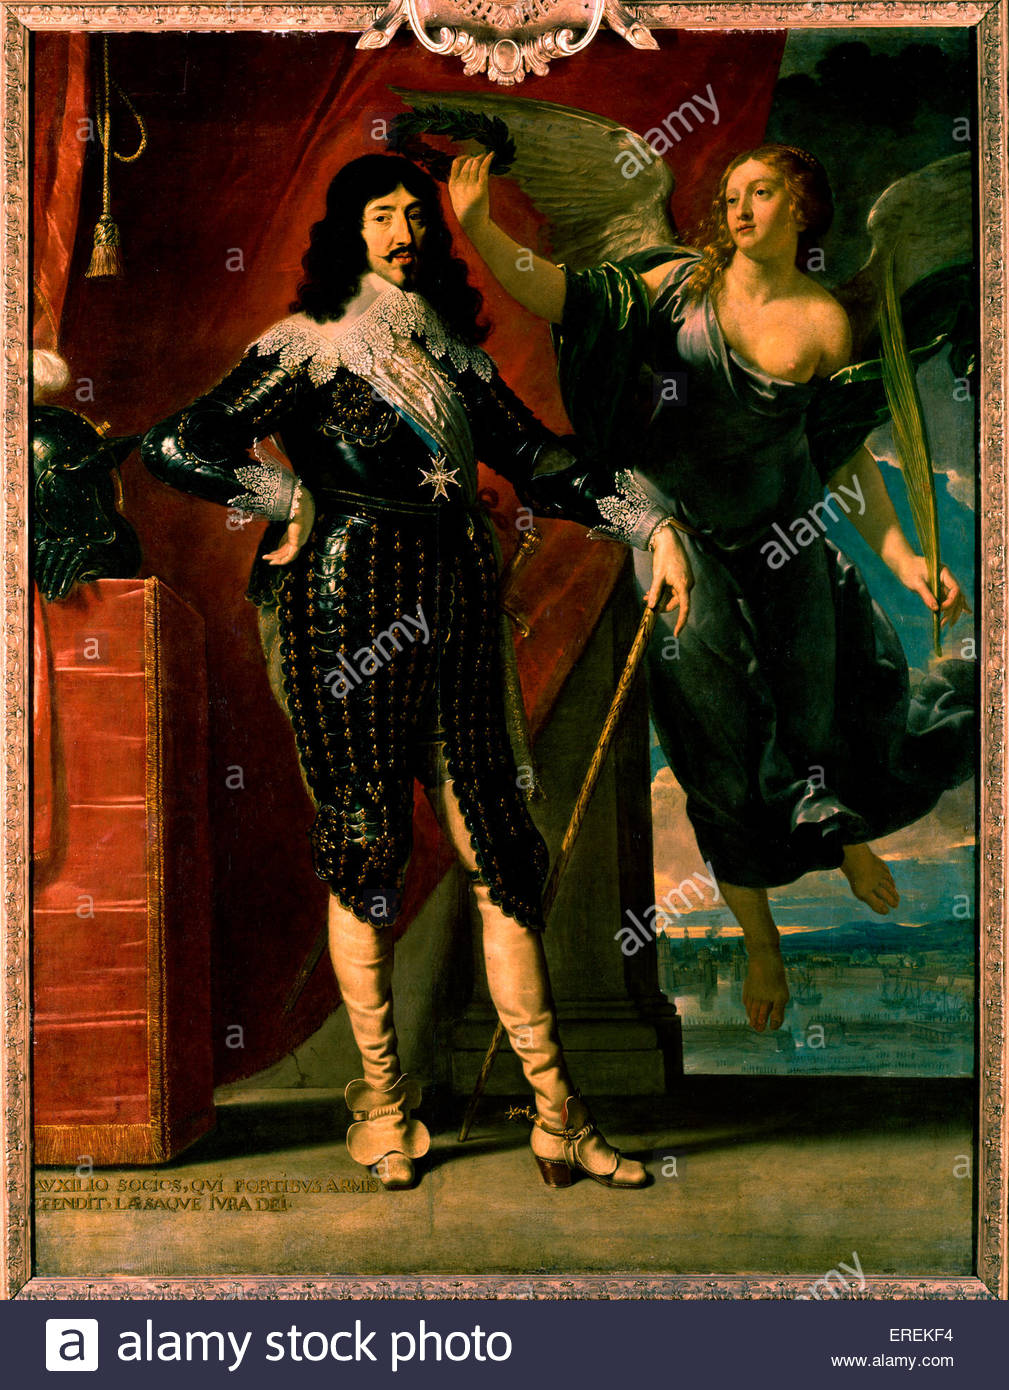 Louis XIII - portrait of his coronation by Victory. Painting by Philippe de Champaigne (1602 - 1674), National Museum, - Stock Image